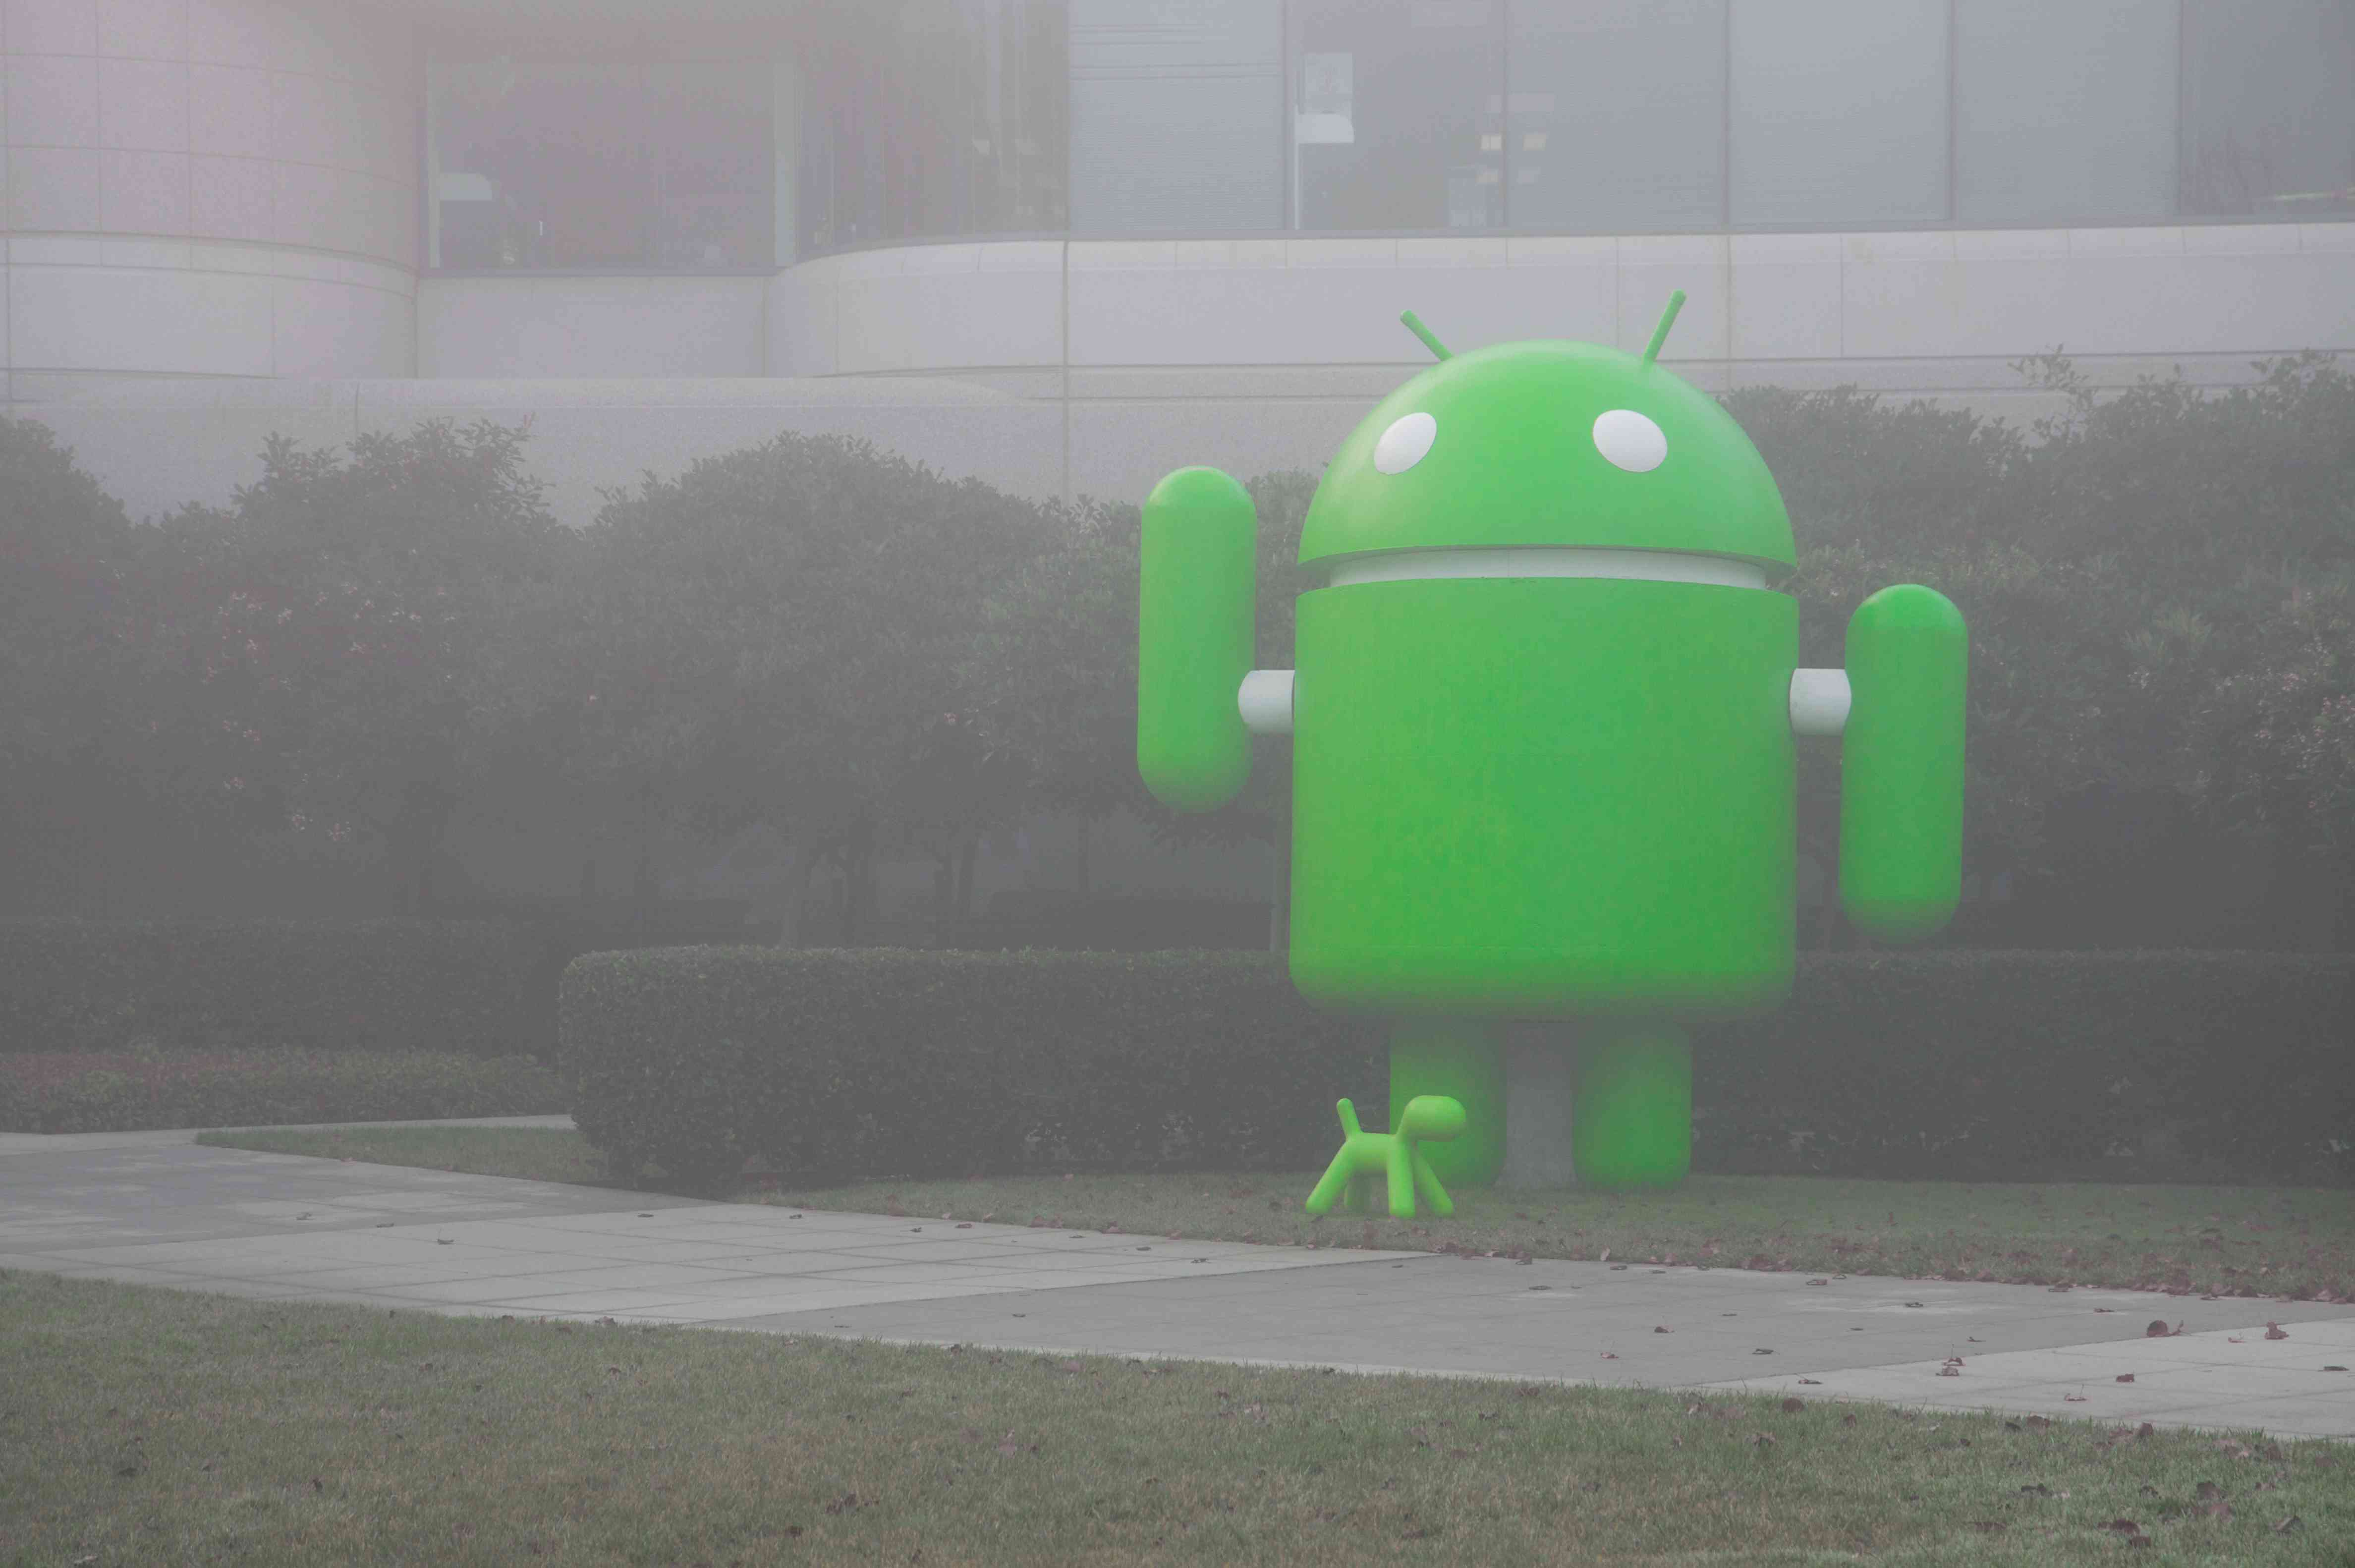 Android statue in mist